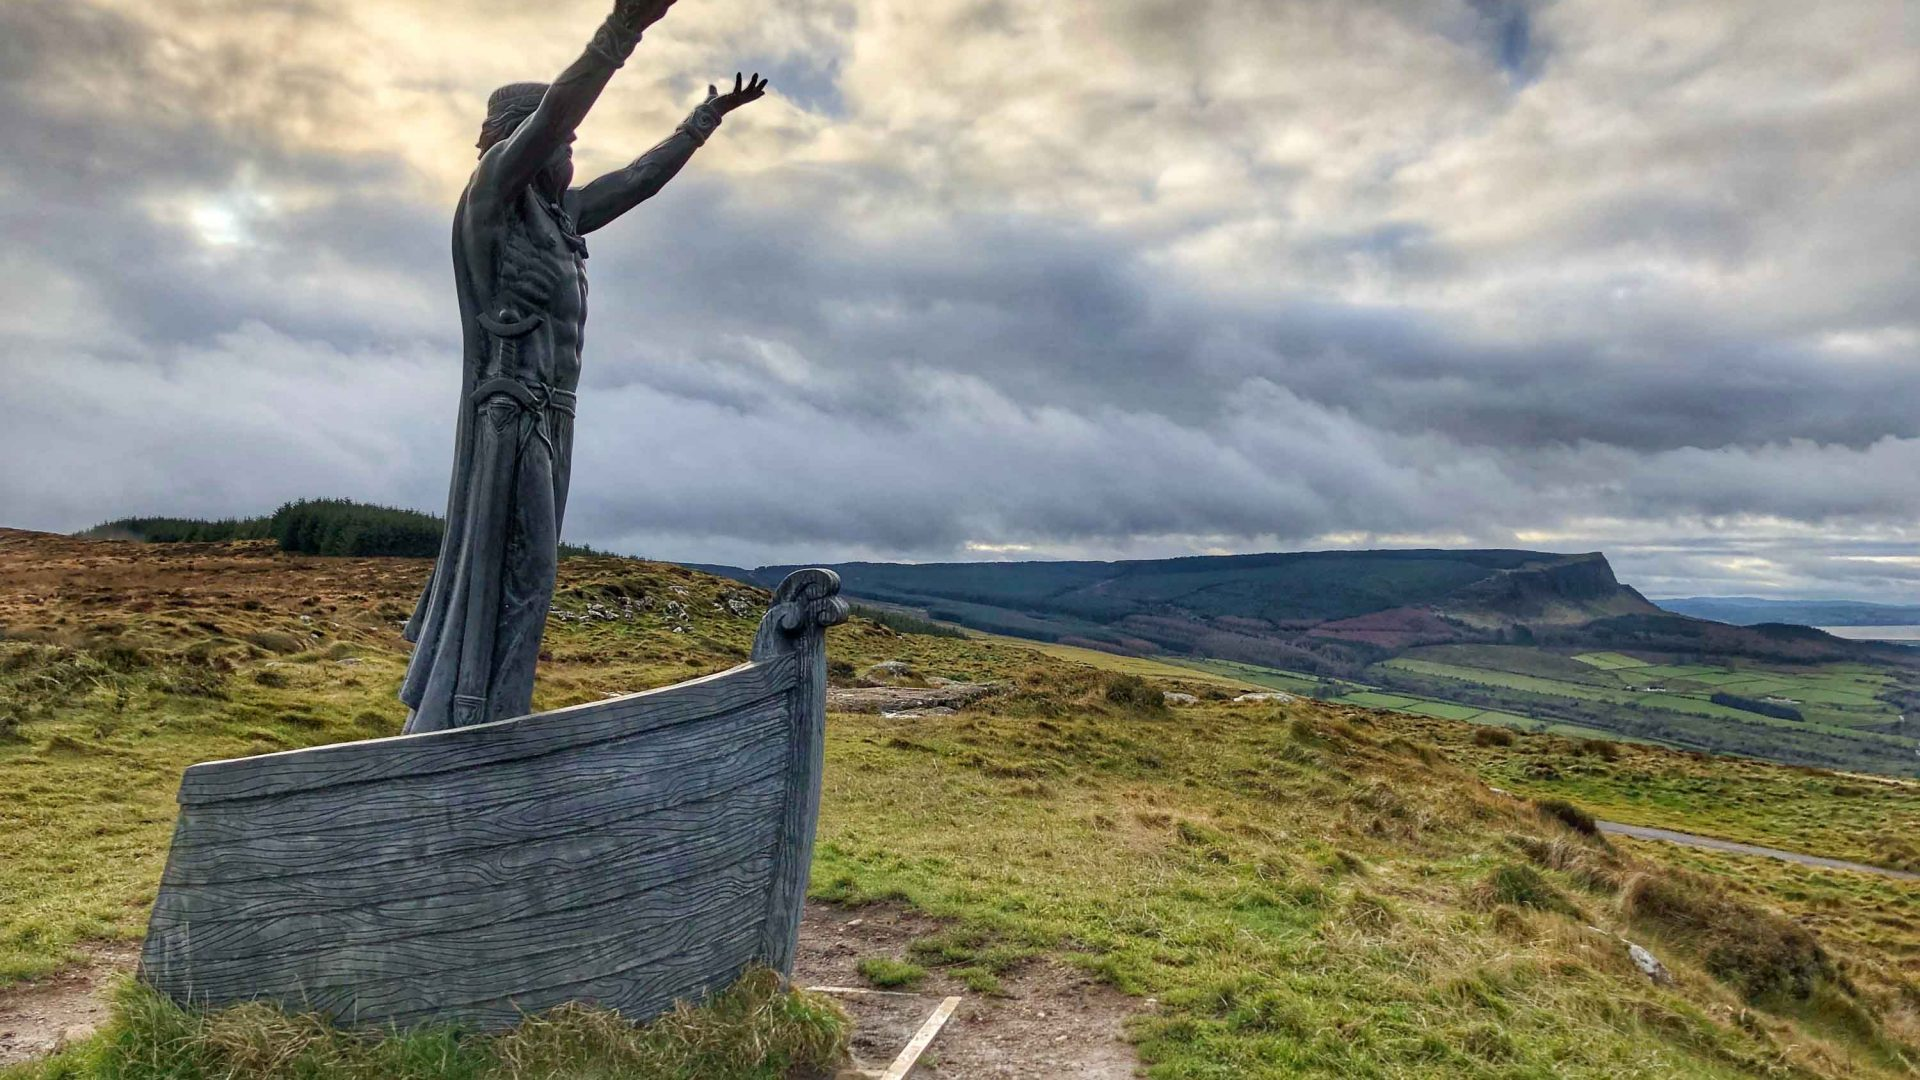 Manannán mac Lir at Gortmore viewpoint, looking out to Magilligan Point, Greencastle town and the Inishowen Peninsula.